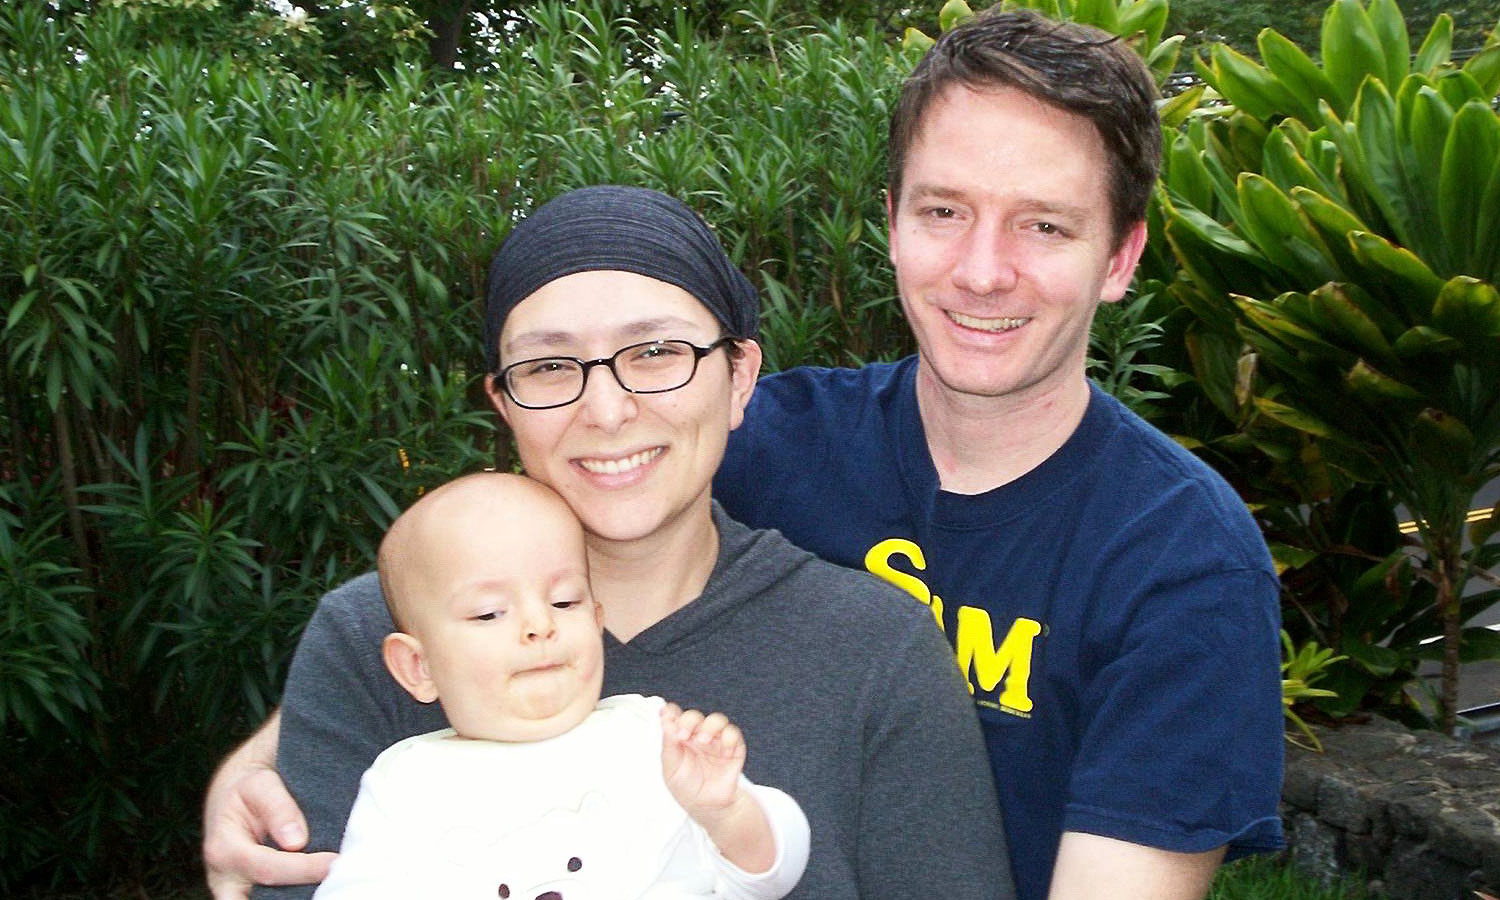 Amber Bobnar in 2005 with husband, Esoos, and son, Ivan.